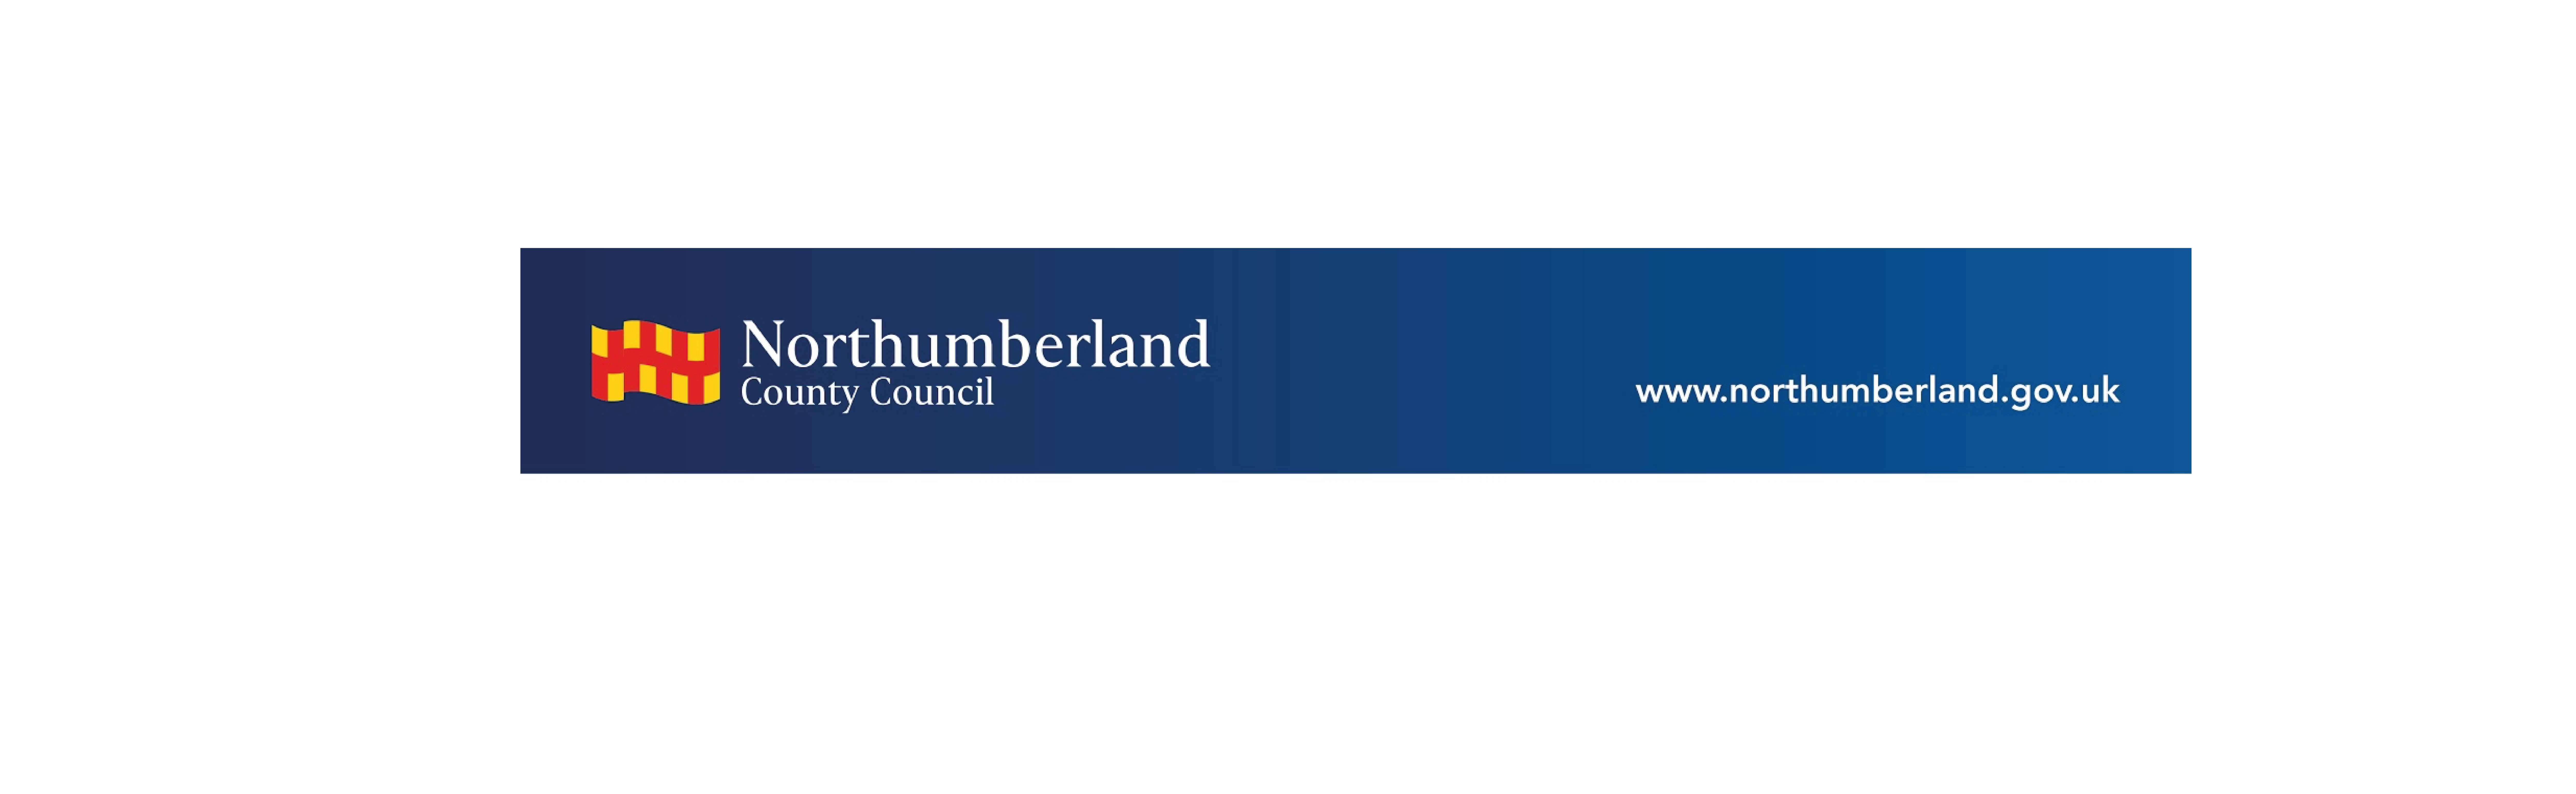 Education Directory - Northumberland County Council